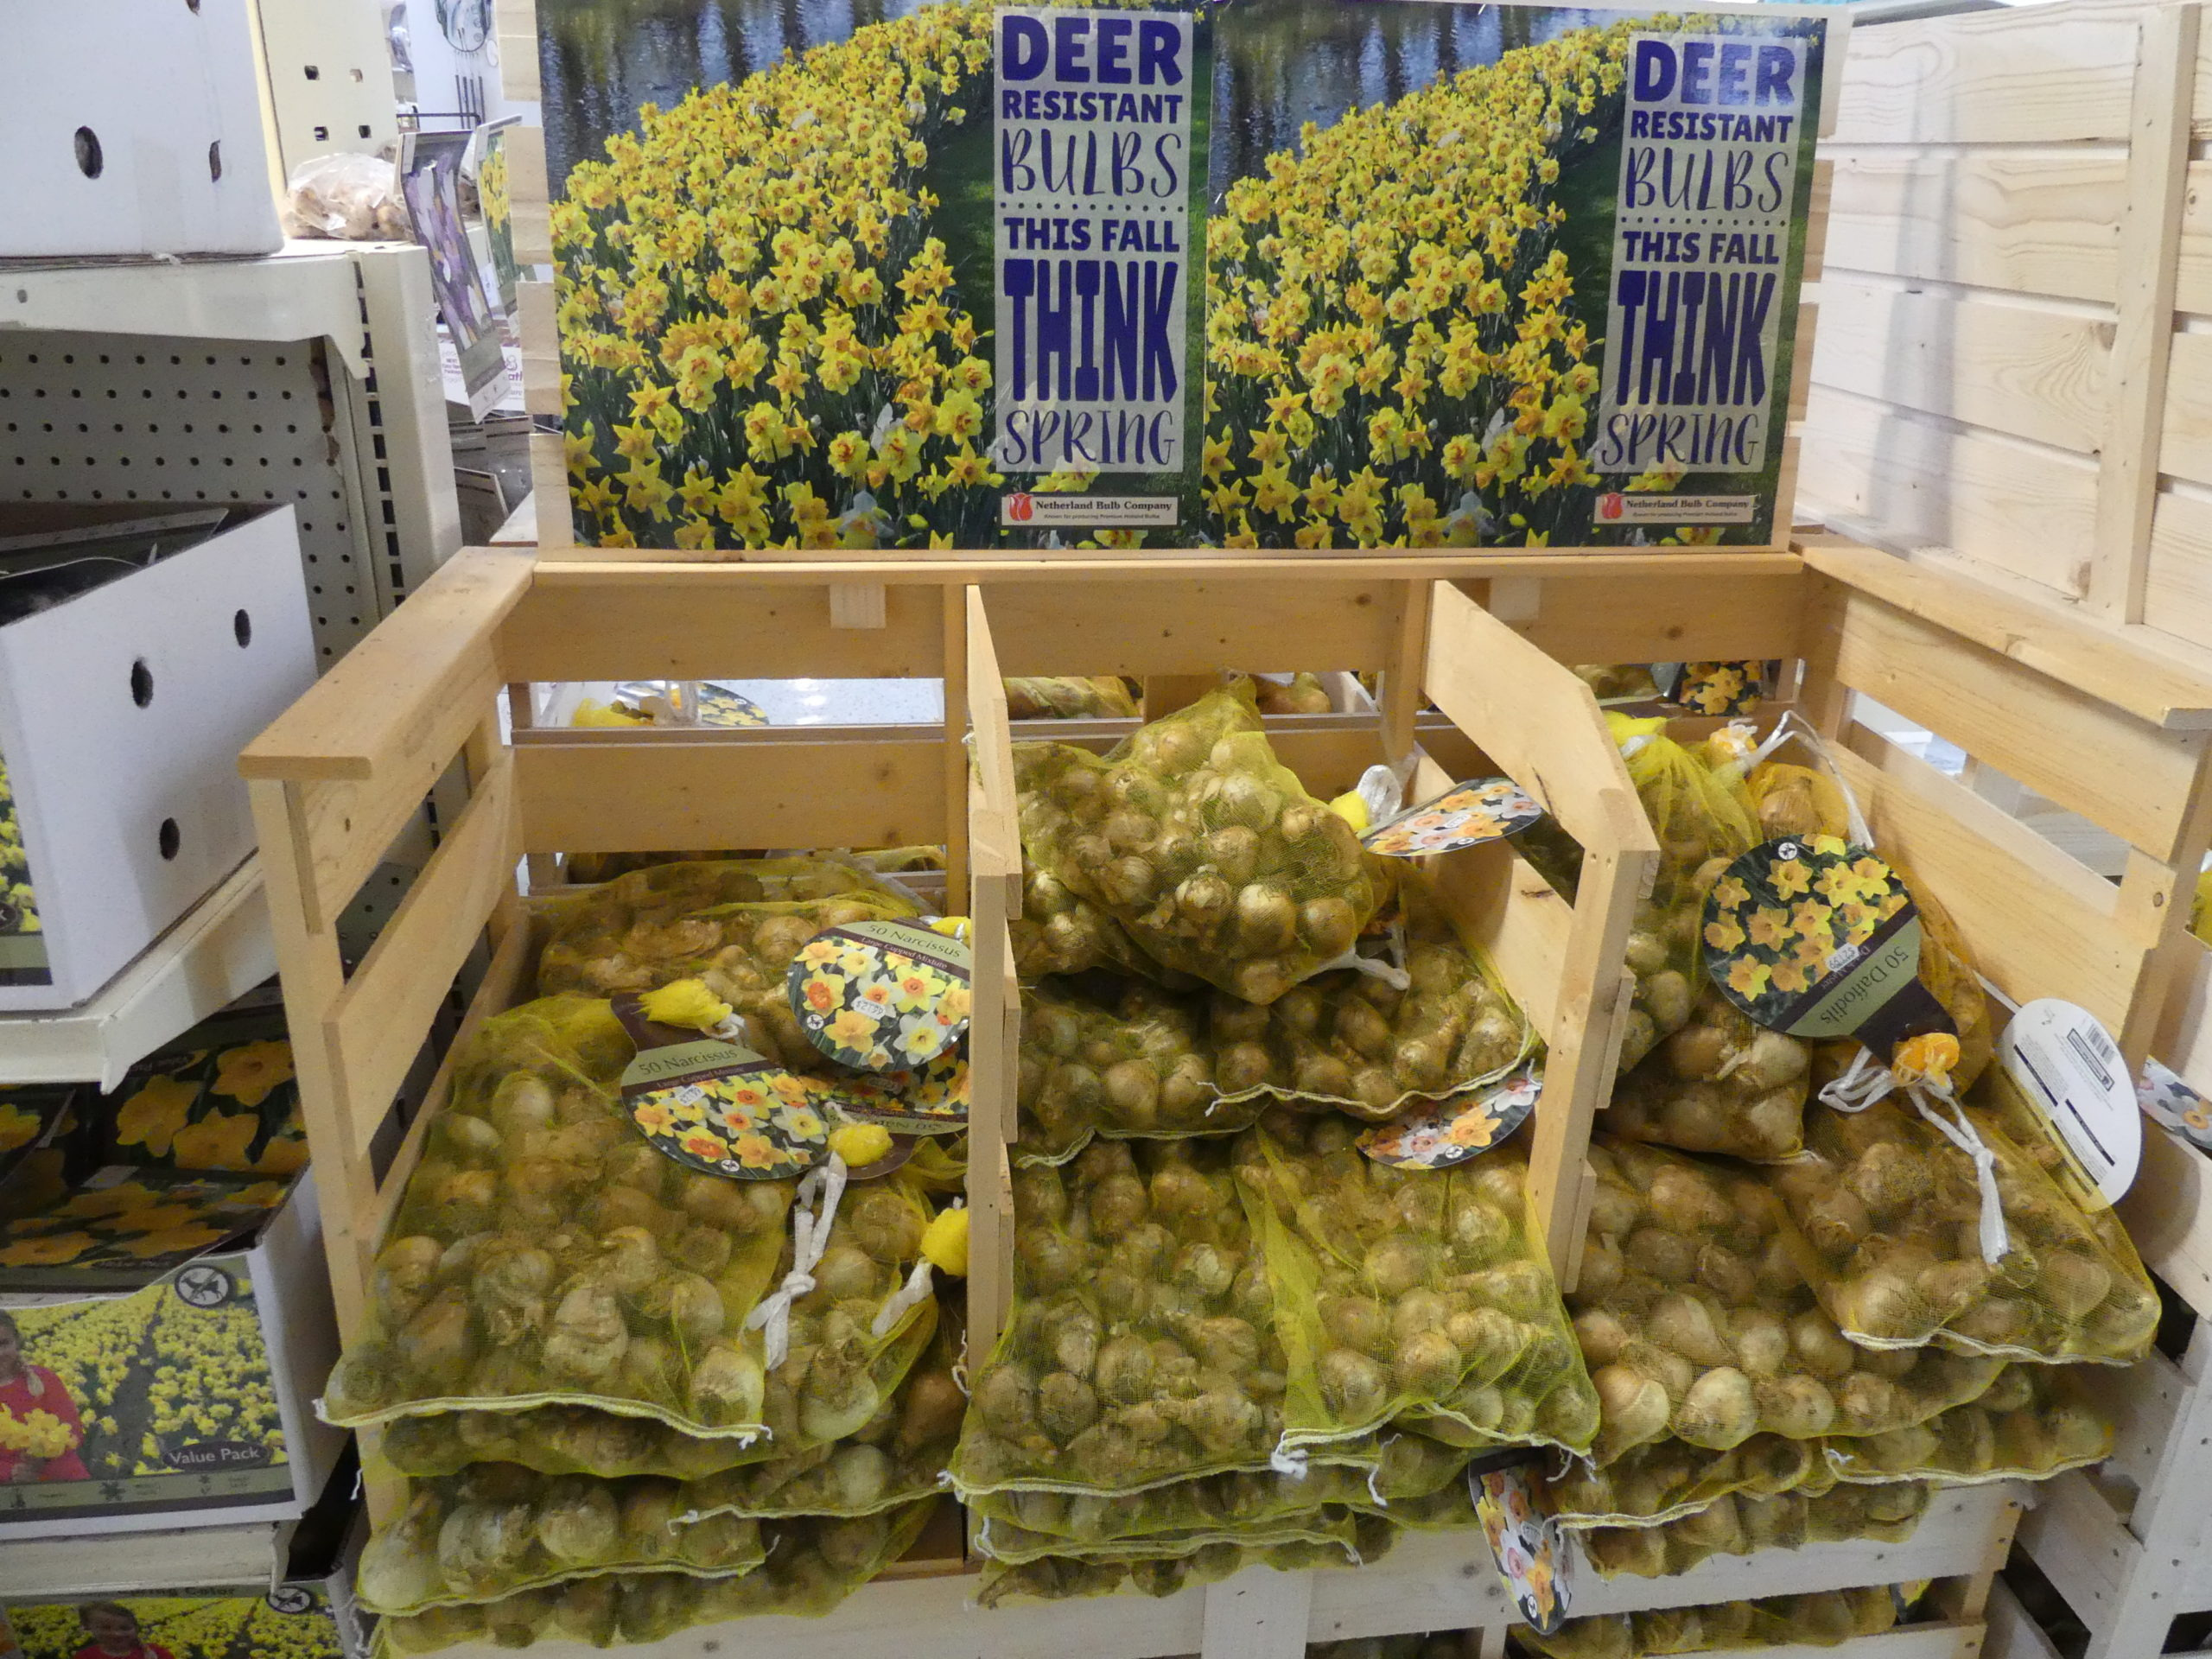 Prepackaged, bagged or bushel baskets of bulbs are usually less expensive than larger single bulbs, and these